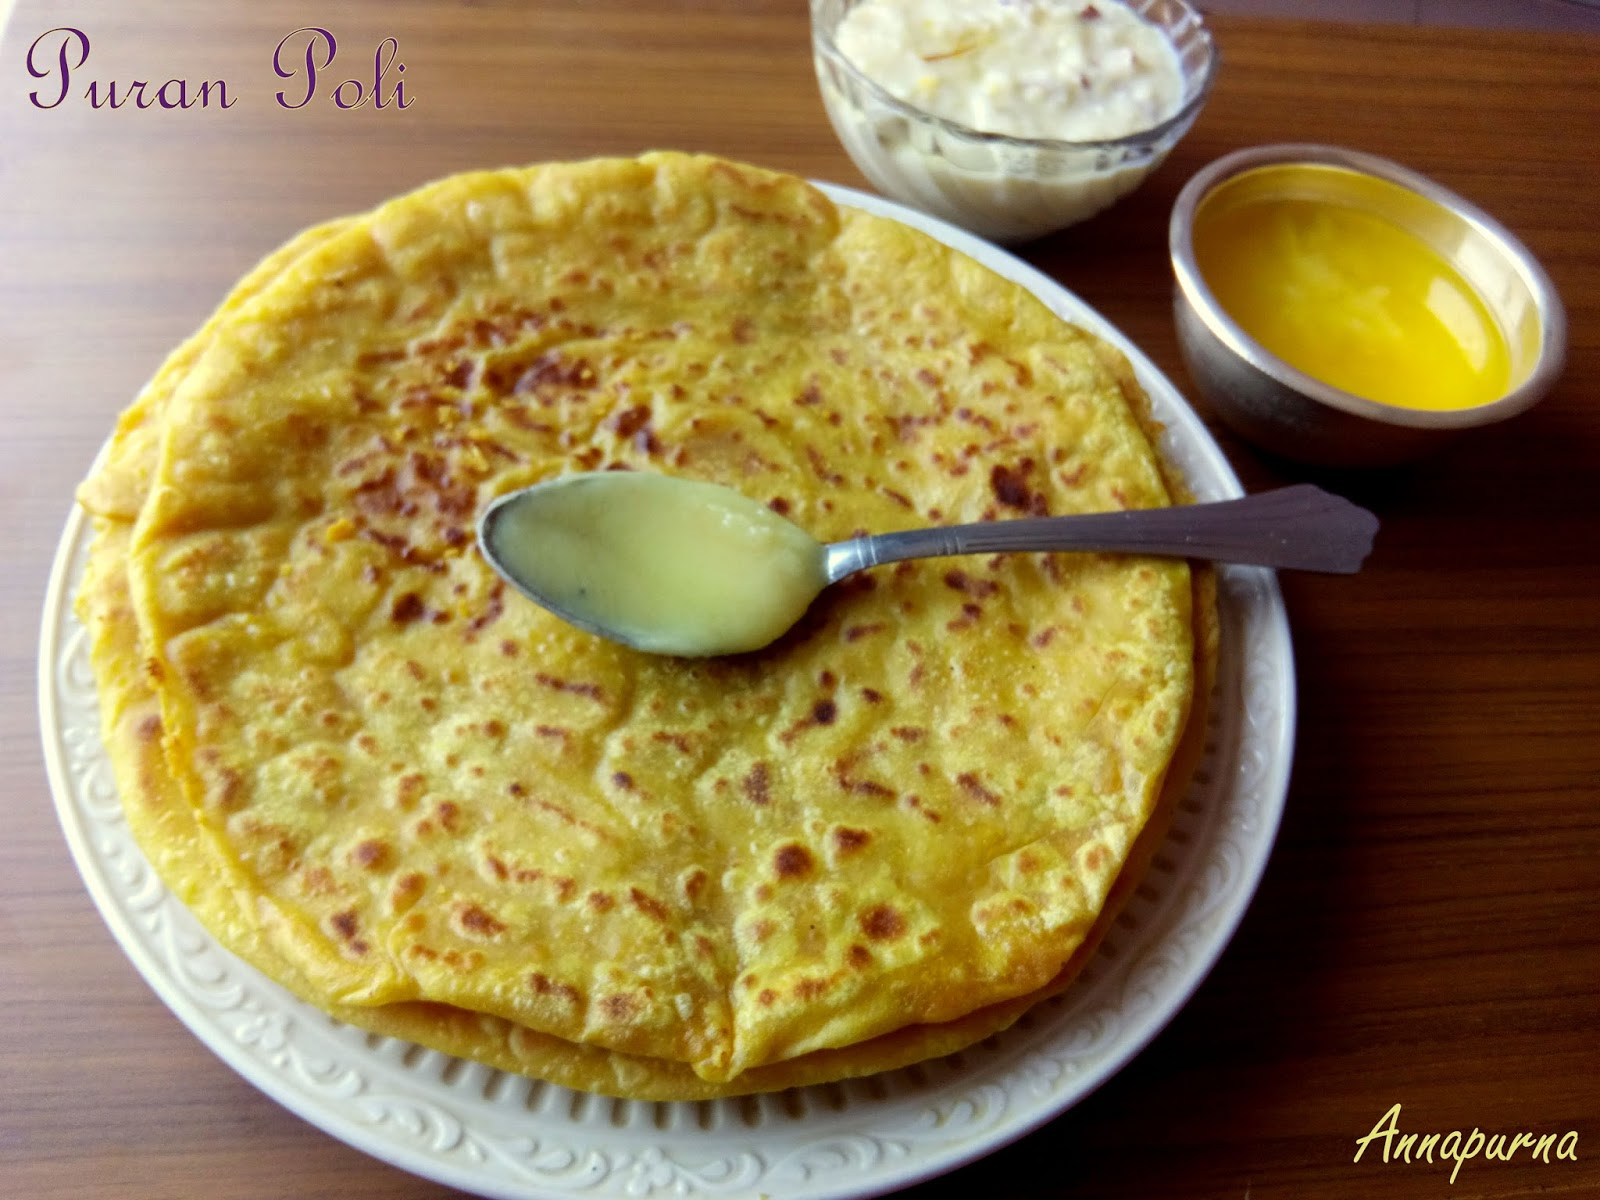 Annapurna puran poli recipe for Annapurna indian cuisine